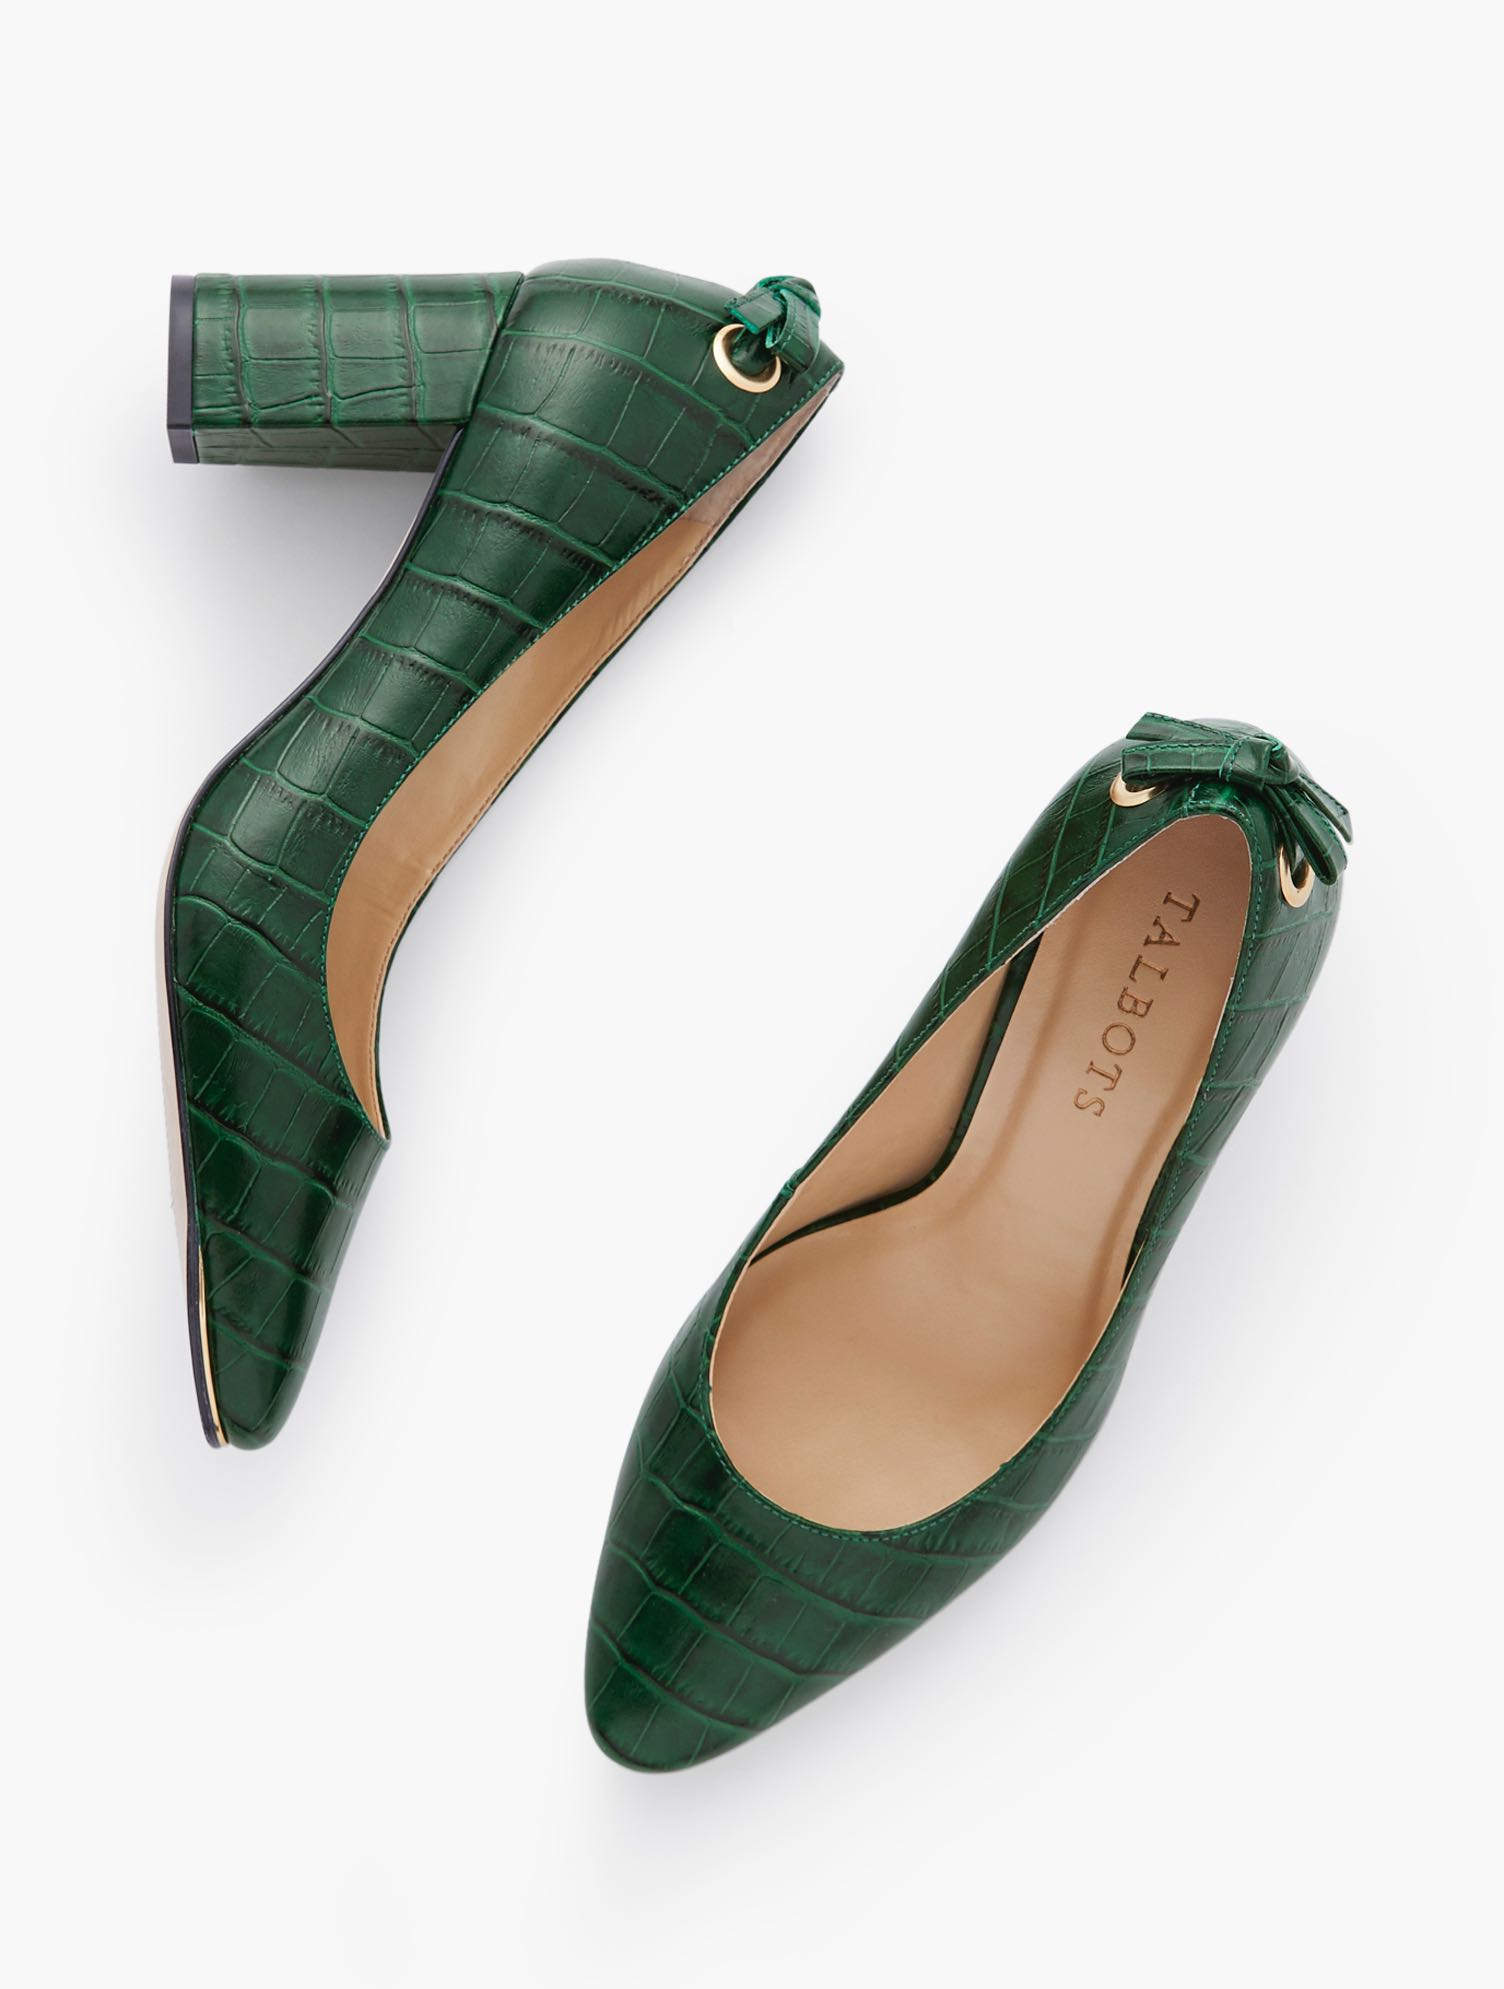 Our classic Kelsey Block Heel Pumps. Tie detail at back adds an extra dose of fashion interest. Pure leather, rendered in embossed croc design. Features 3MM Memory foam footbed3 inches heelBack tie detailAlmond toeImported Material: 100% Leather Kelsey Tie Detail Block Heel Pumps - Embossed Croc - Green - 11M Talbots